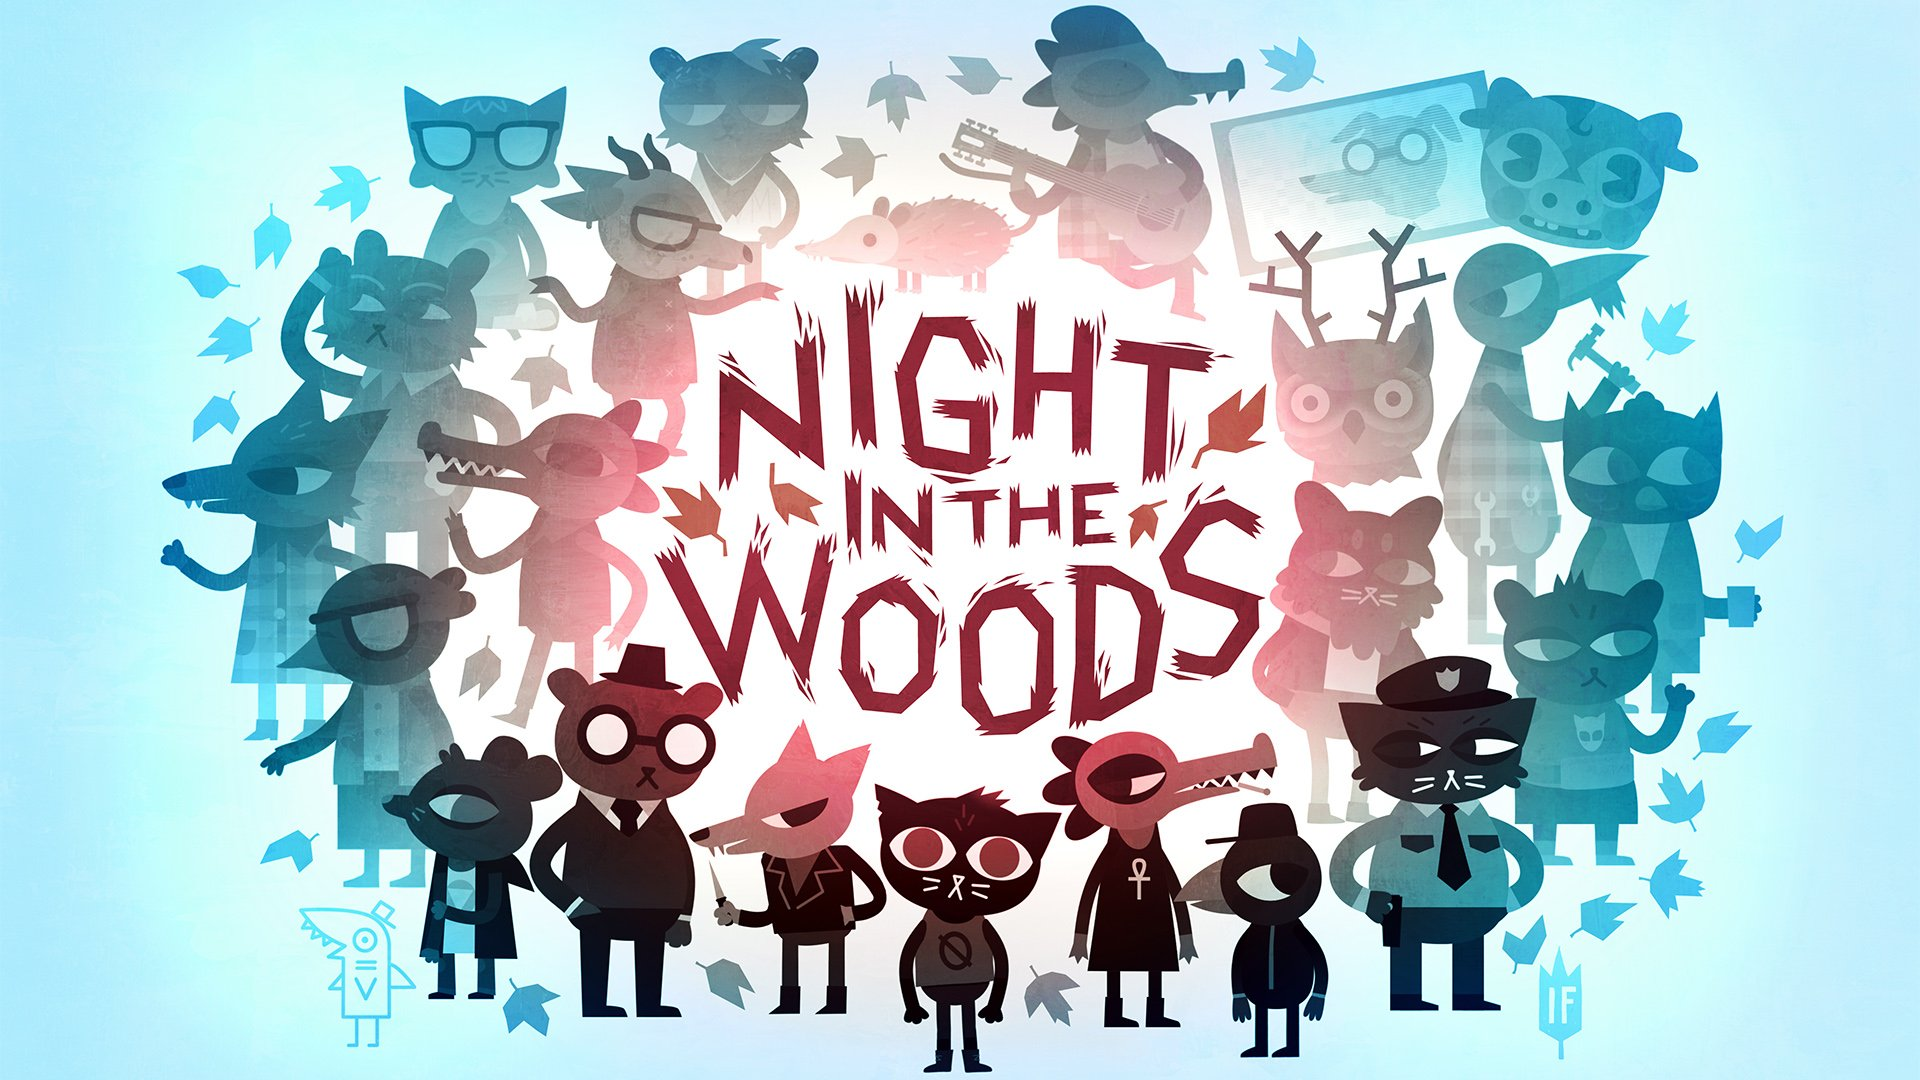 The free Weird Autumn update for Night in the Woods is out now! Grab the game on PS4 here: https://t.co/Wx38fSHYMk https://t.co/zoPY7ZqZ6X